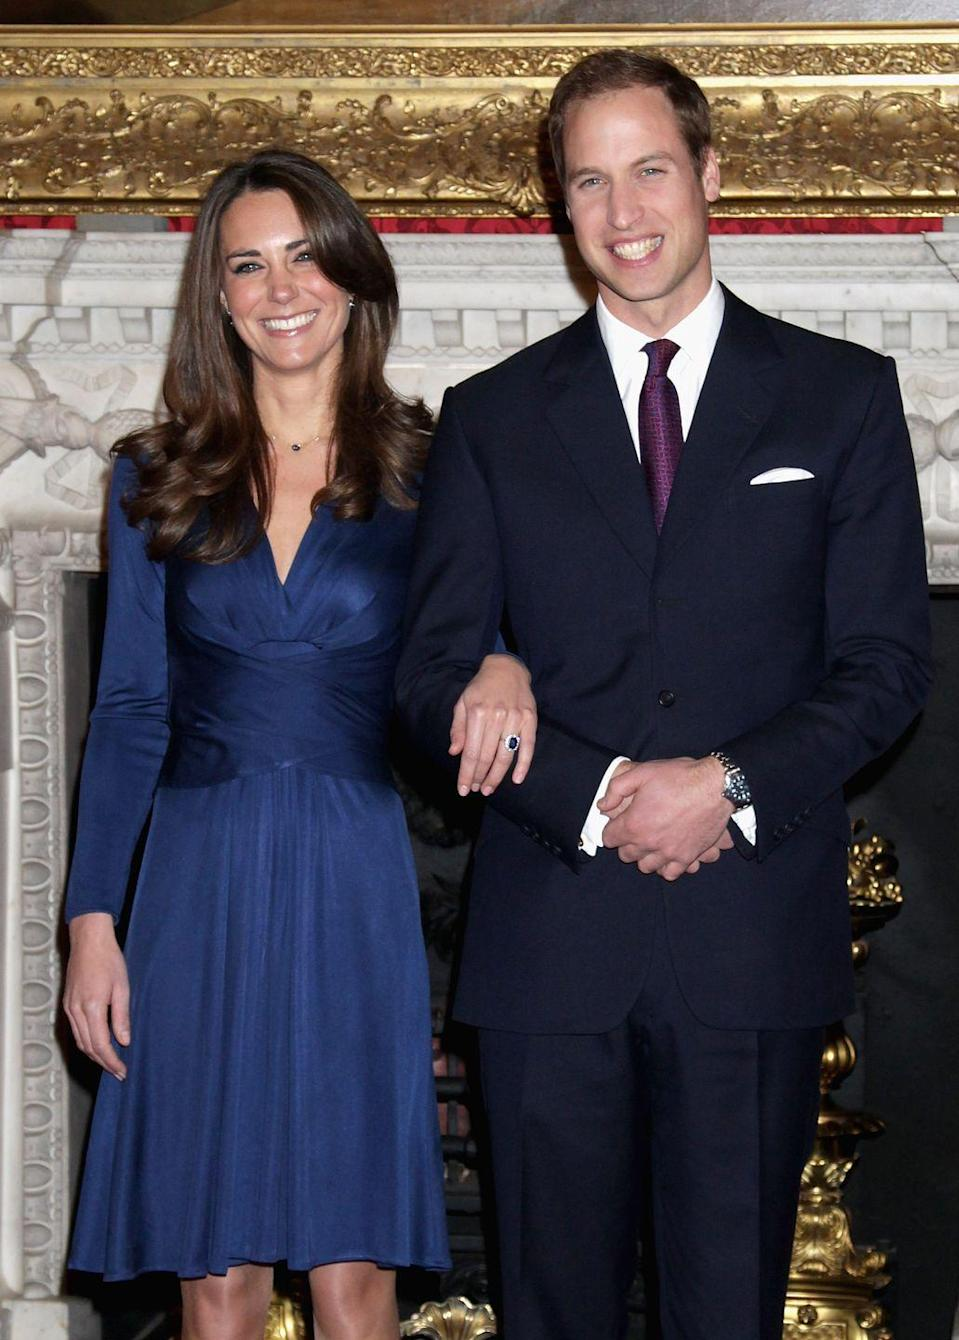 """<p>It was big deal when Kate and William got engaged, so naturally everyone wanted to get their hands on the blue Issa dress the soon-to-be royal wore to the announcement. </p><p>In fact, so many people wanted to get their hands on the dress that the fashion brand couldn't keep up and it contributed to their downfall. <a href=""""https://www.elle.com/uk/fashion/celebrity-style/news/a34185/kate-middleton-blue-issa-engagement-dress-daniella-helayel/"""" rel=""""nofollow noopener"""" target=""""_blank"""" data-ylk=""""slk:In an interview with the Daily Mail"""" class=""""link rapid-noclick-resp"""">In an interview with the <em>Daily Mail</em></a>, the designer revealed that the high demand for her designs turned out to be disastrous for her business. Sales nearly doubled and she and her 25-person staff couldn't keep up with the demand. They went out of business two years later. </p>"""